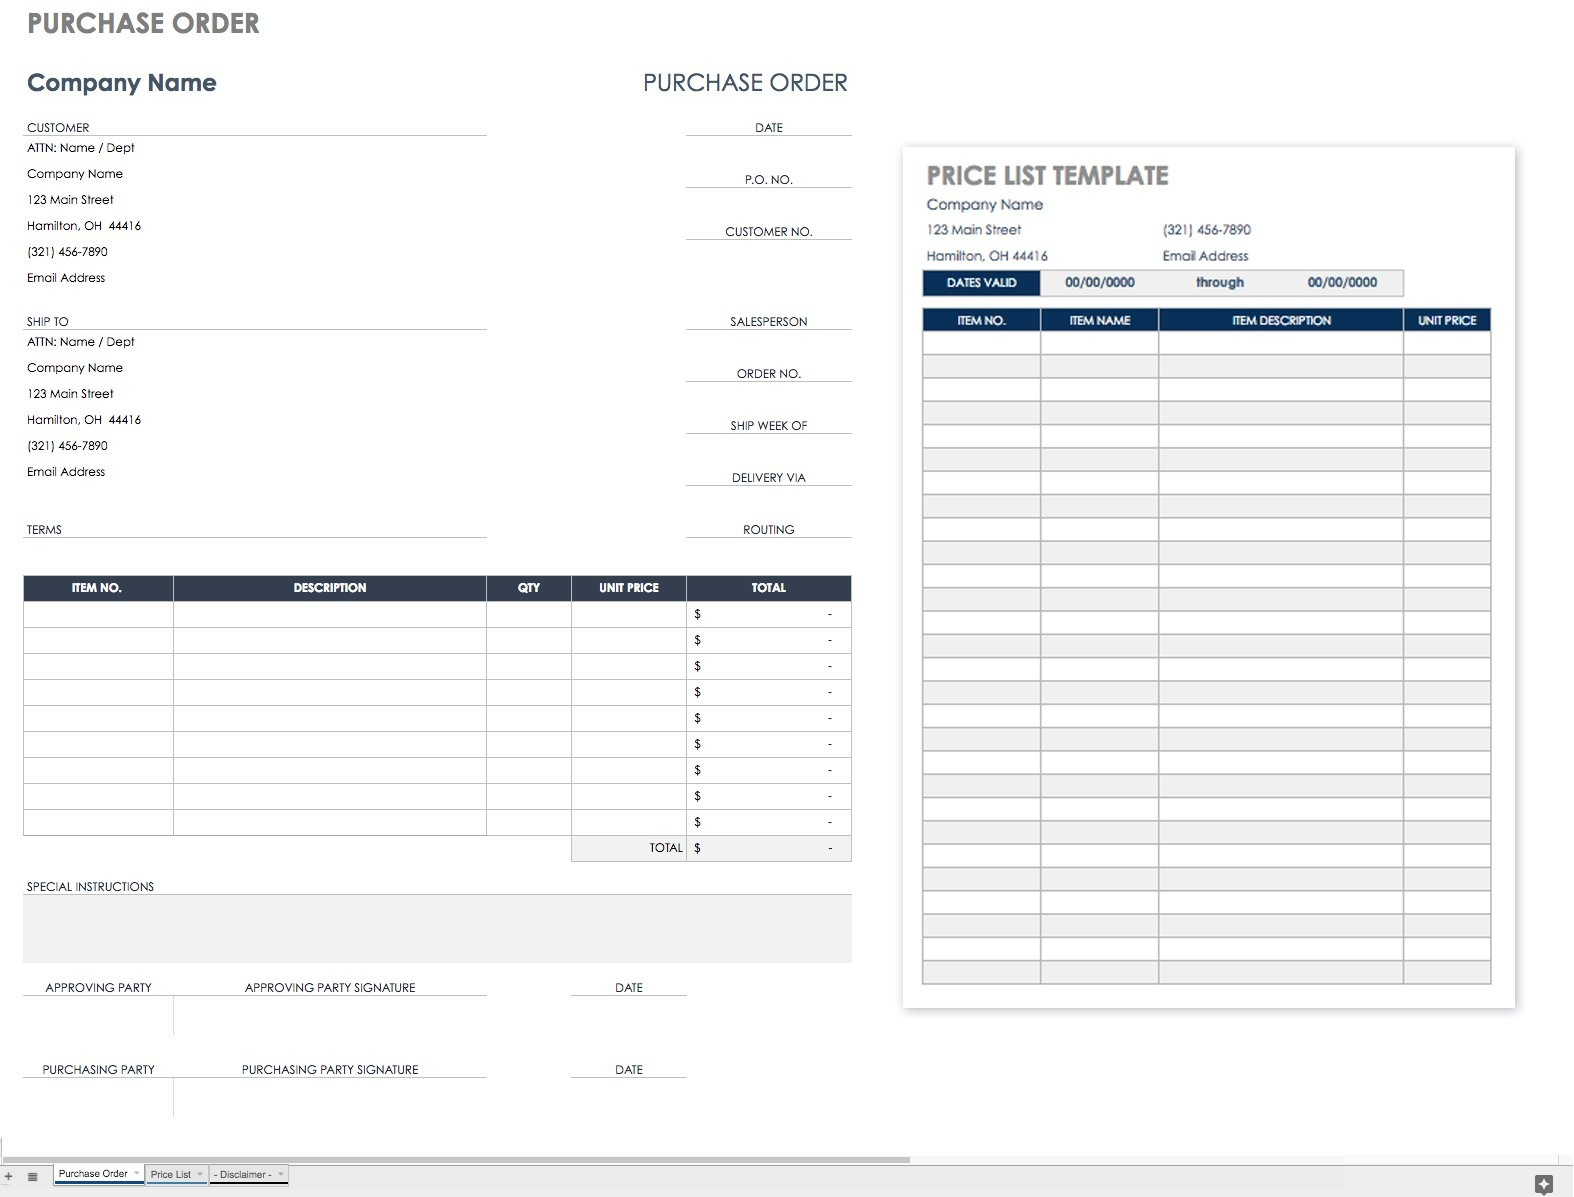 Free Purchase Order Templates | Smartsheet - Free Printable Work Order Template